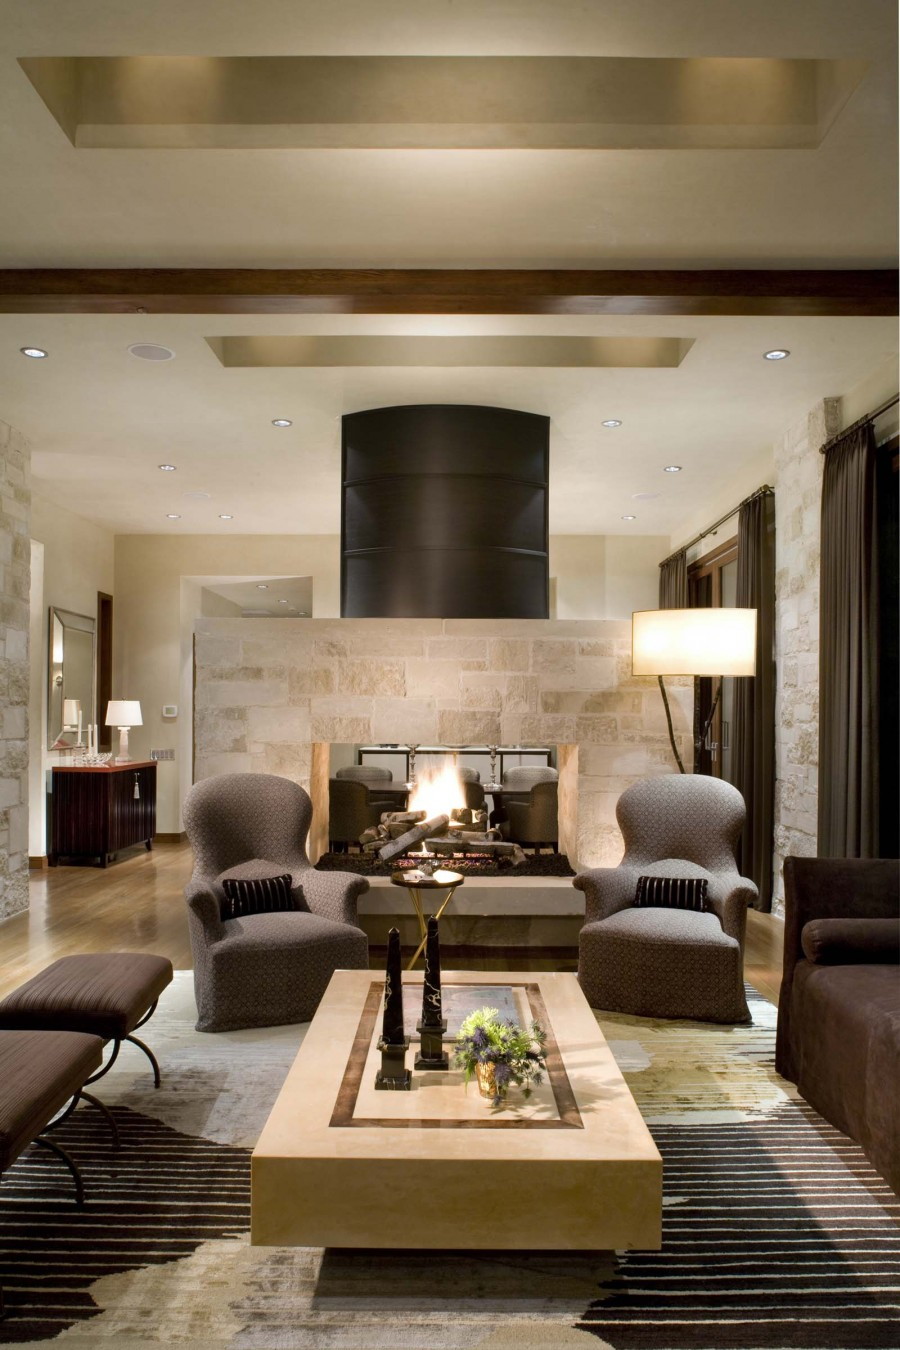 16 fabulous earth tones living room designs decoholic for Family room design ideas